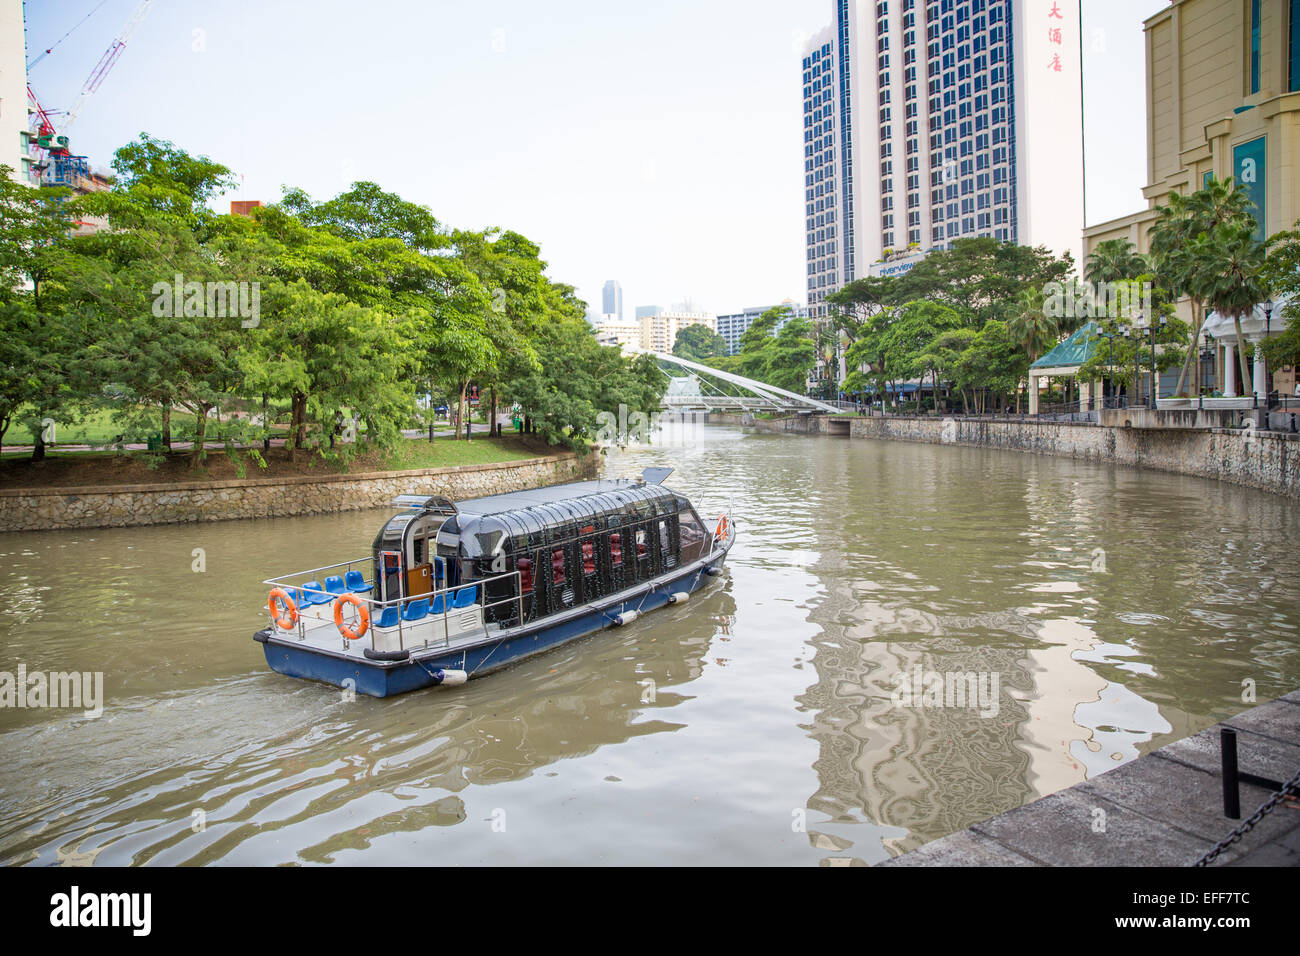 A tourist water taxi boat on Singapore River Stock Photo